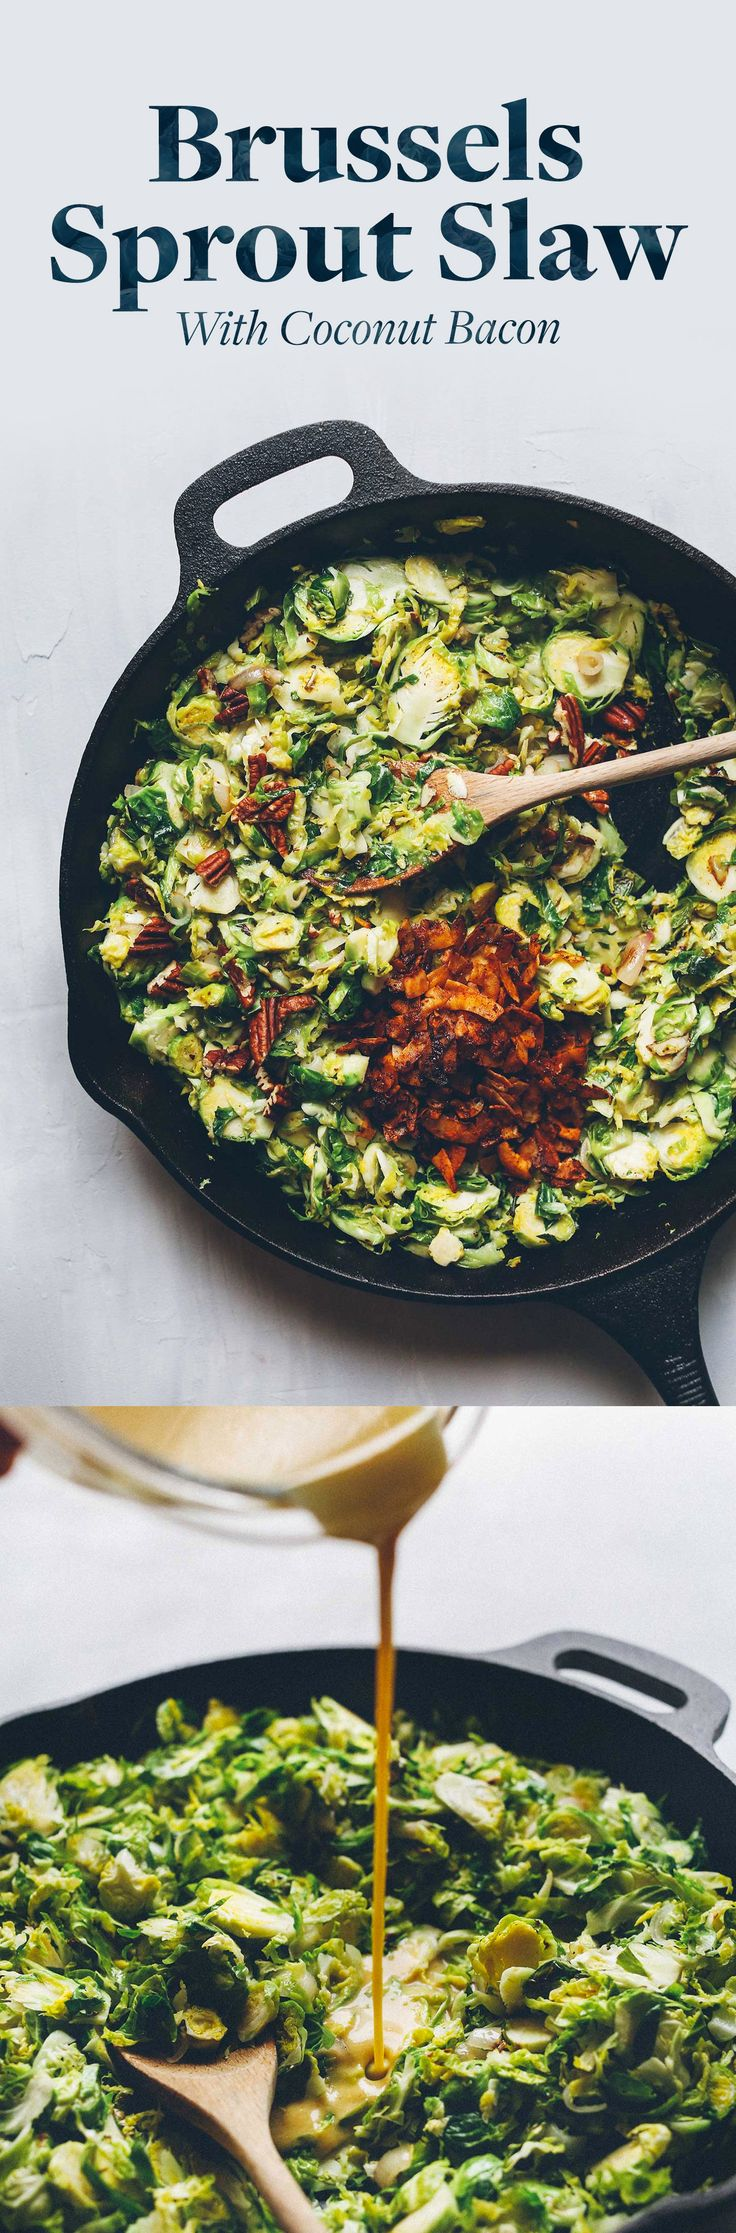 A warm side dish perfect for fall or winter. Brussels sprouts, pecans and coconut bacon are tossed in a tangy mustard dressing! 30 minutes and 100% plant-based.